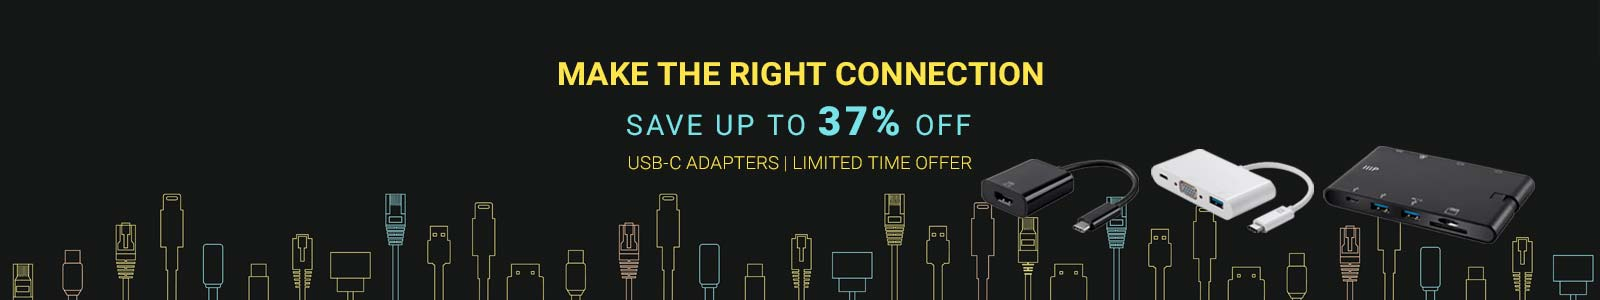 Make the Right Connection